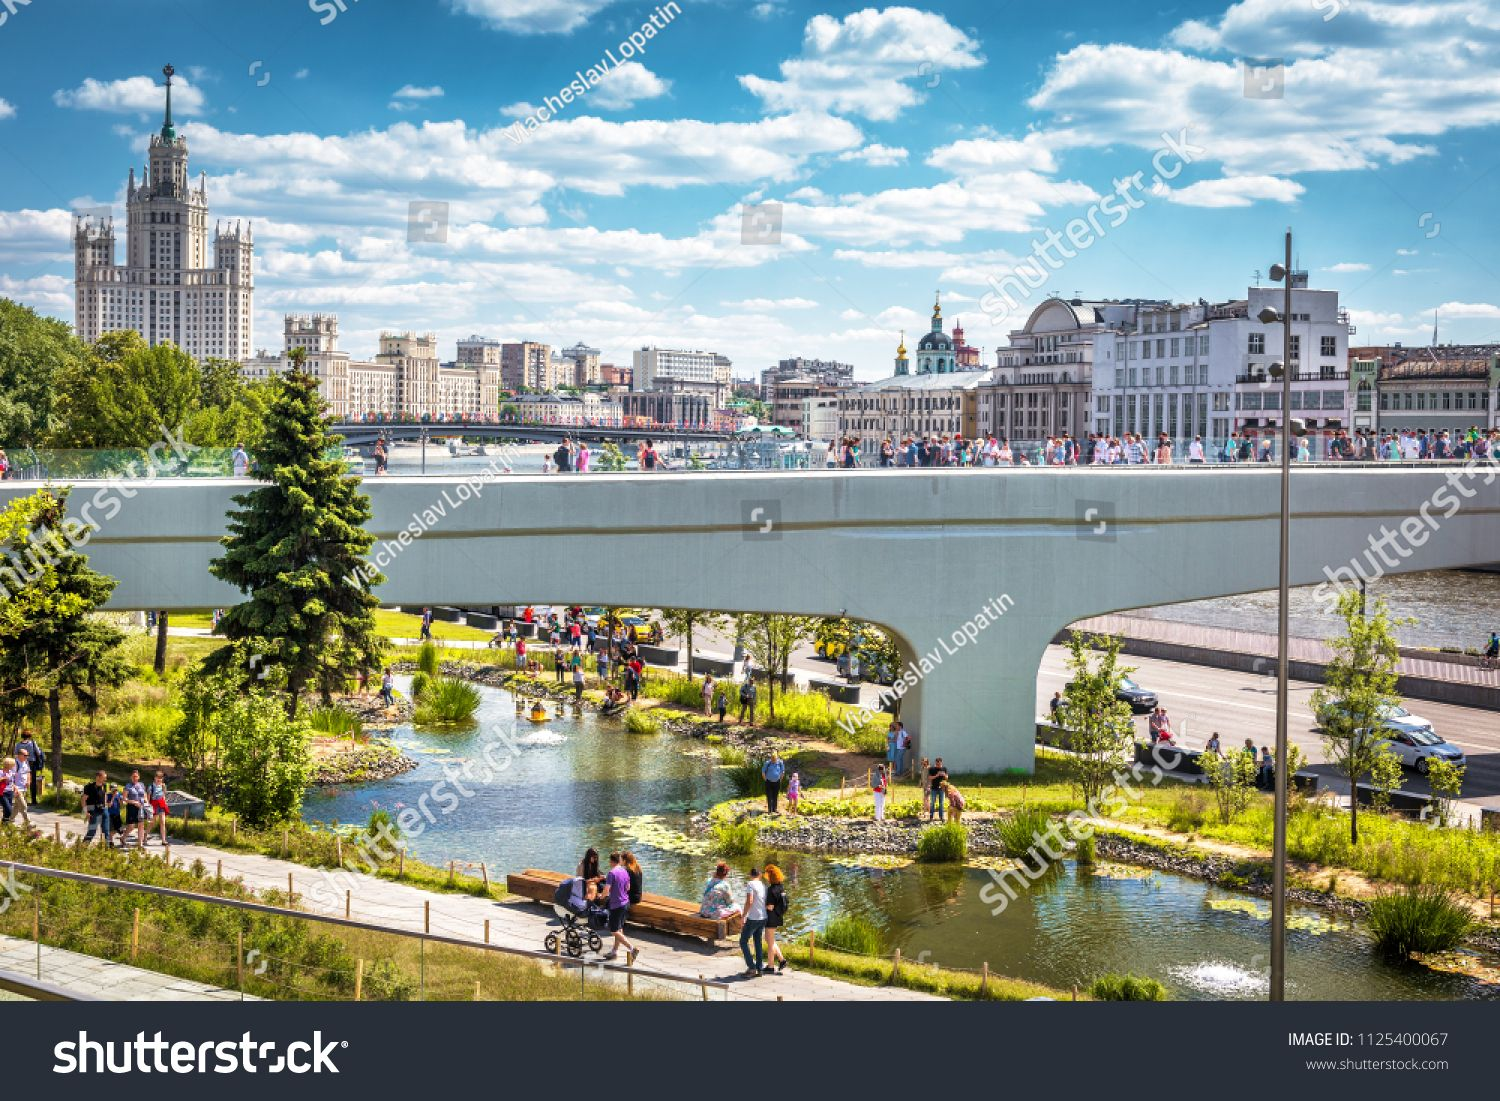 Moscow June 17 2018 People Visit The Zaryadye Park With Floating Bridge In Moscow Russia Zaryadye Is A Tourist Att Scenic Views Scenic Tourist Attraction